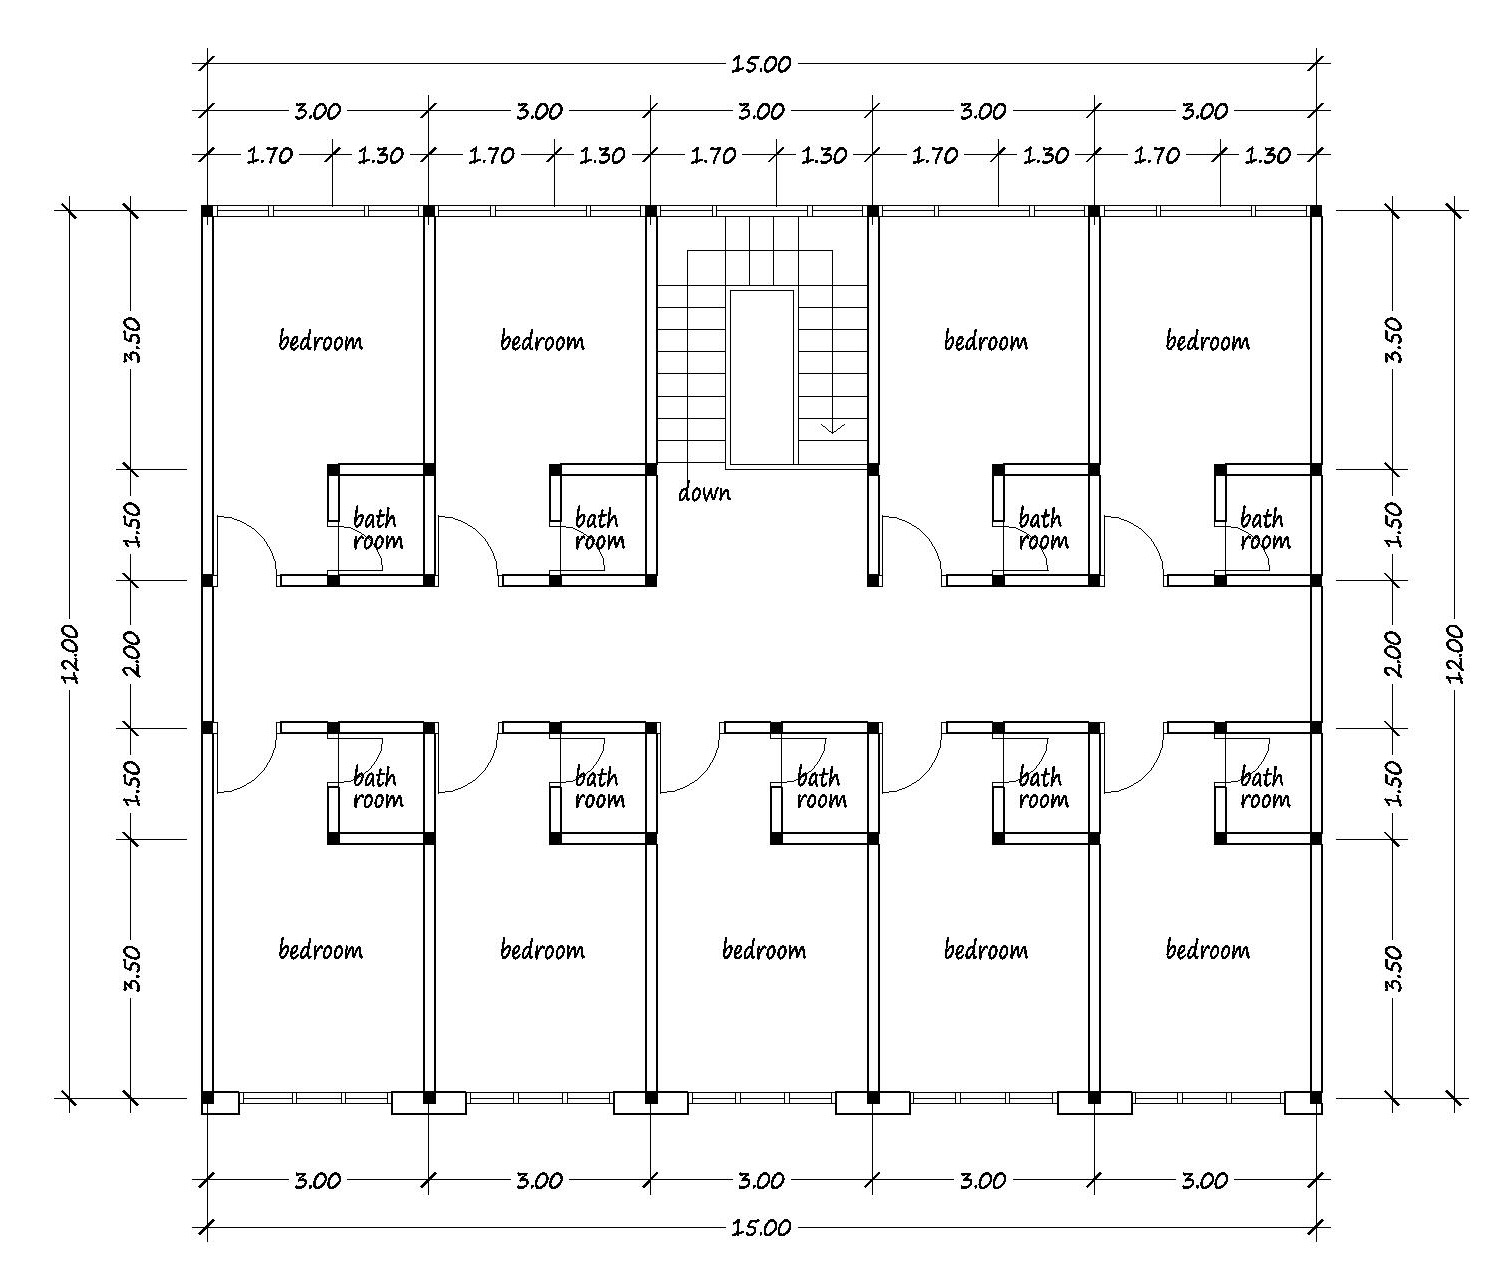 House plans for you plans image design and about house for House plans and designs